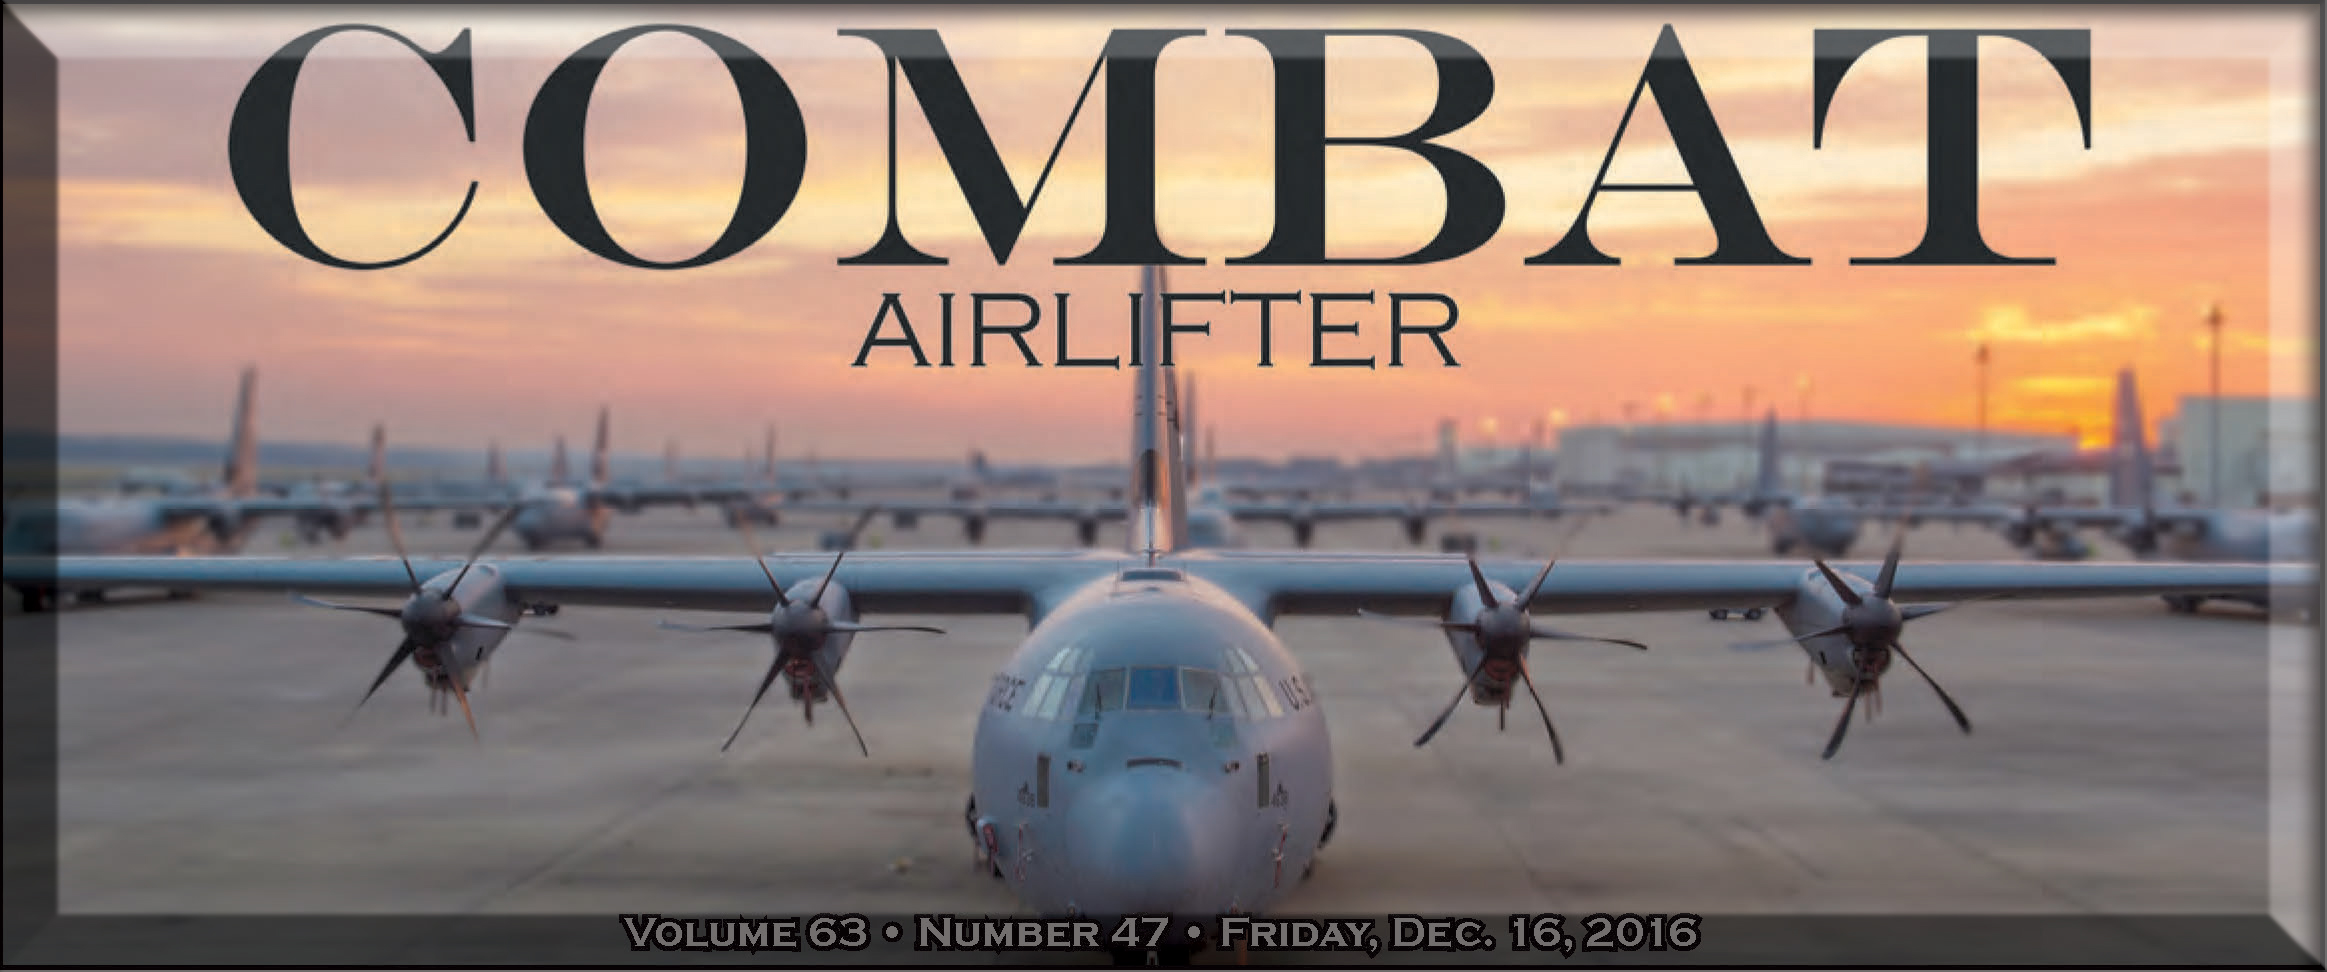 Weekly Combat Airlifter the newspaper for Little Rock Air Force Base